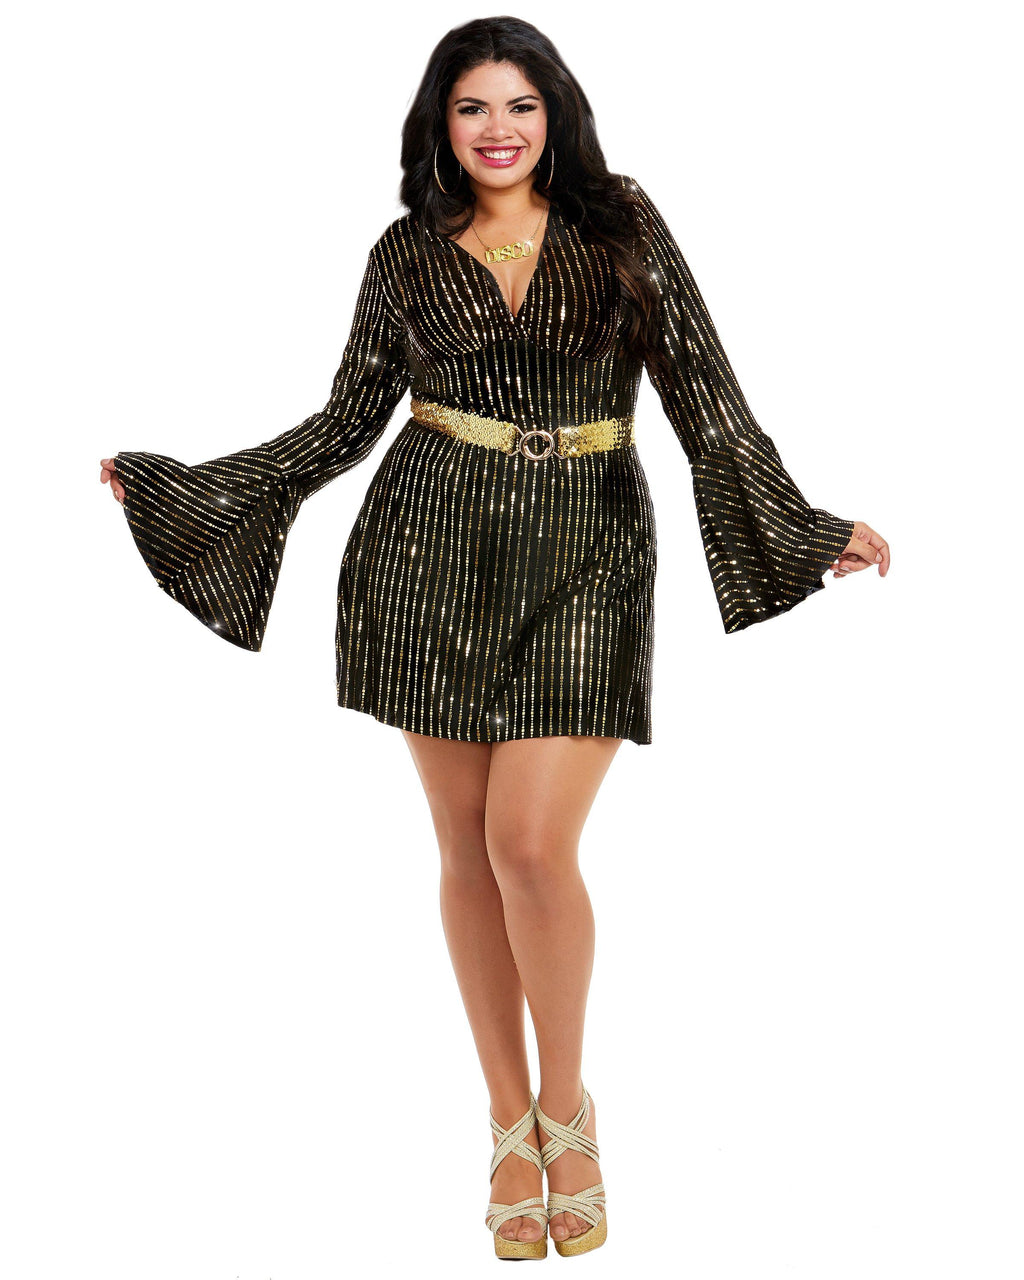 Plus Size Disco Babe Women's Costume Dreamgirl Costume